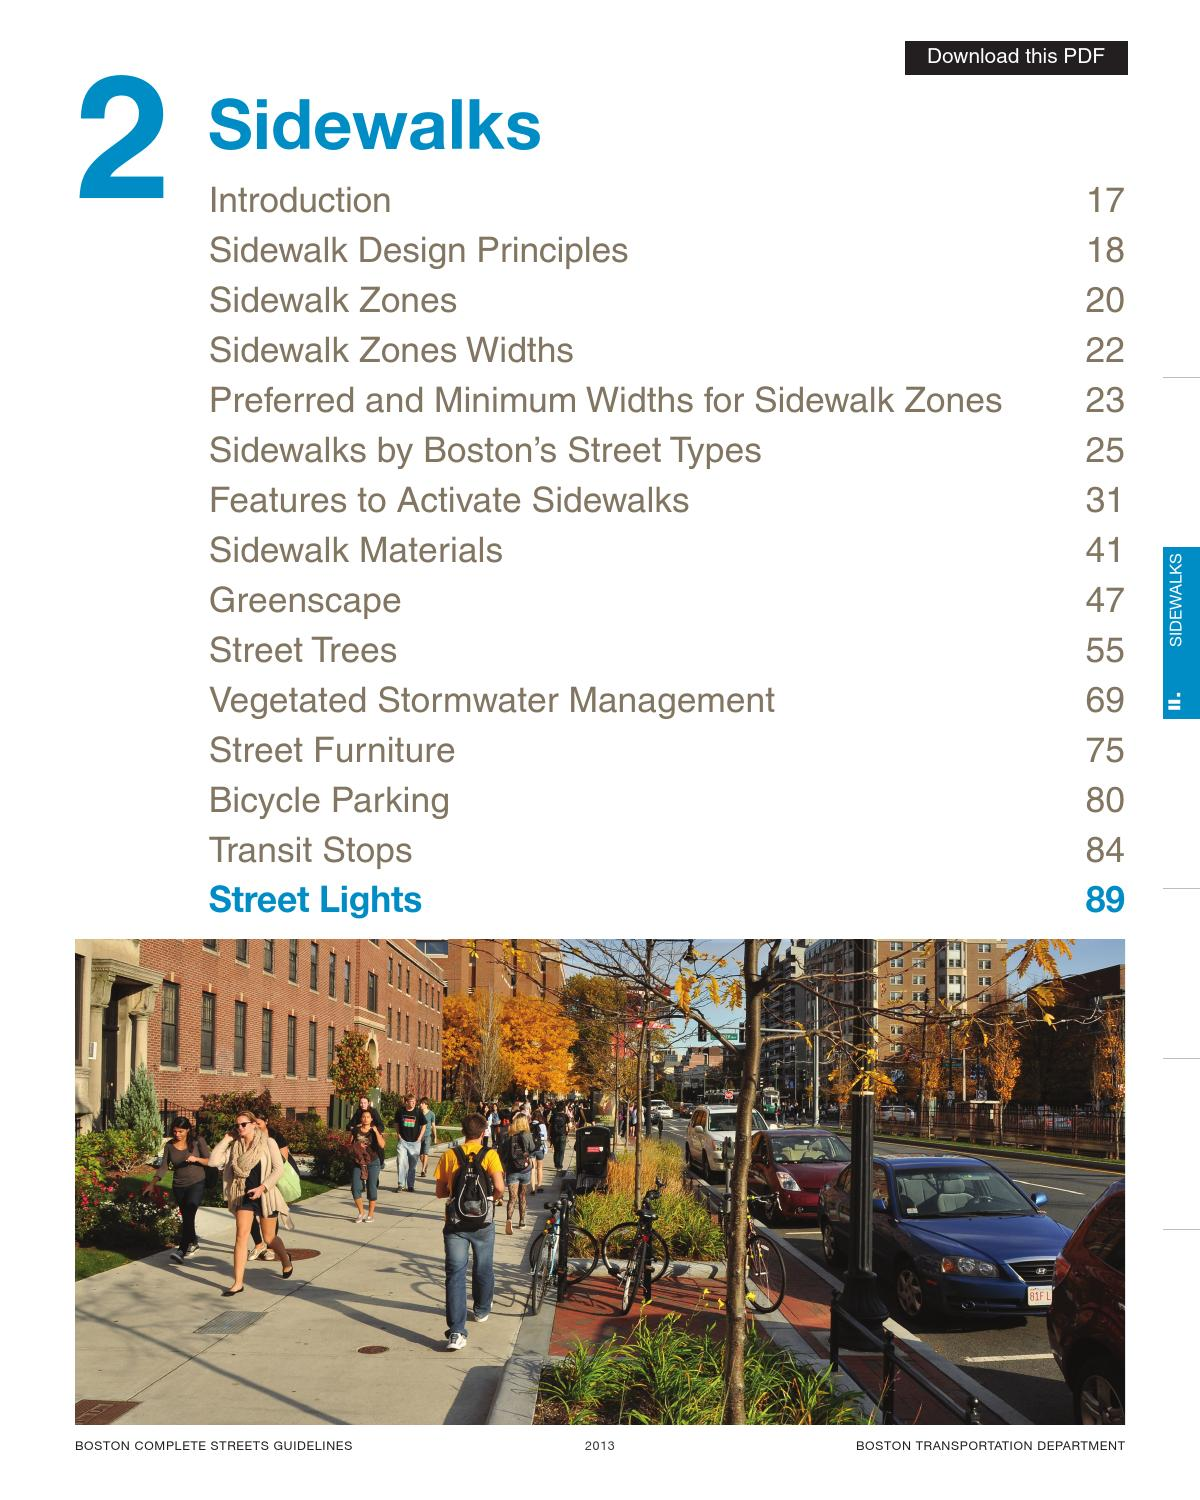 2 15 street lights by boston transportation department issuu